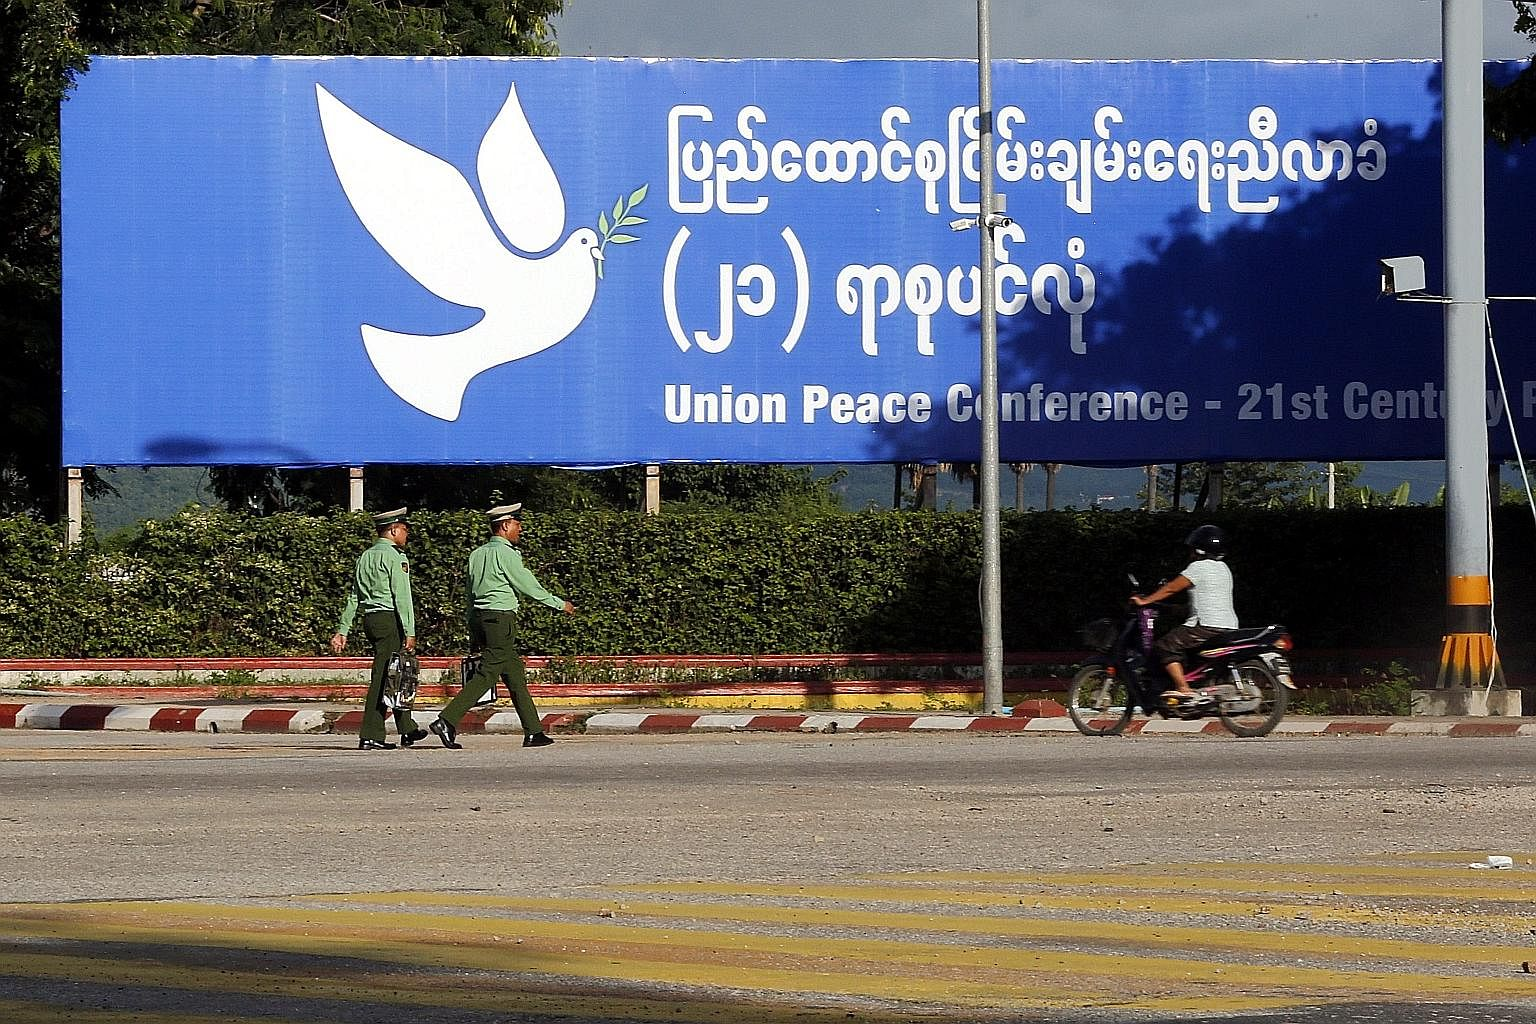 A billboard on the 21st Century Panglong Conference in Naypyitaw, Myanmar. Seven categories of stakeholders - the government, Parliament, political parties, the armed forces, armed ethnic groups, invited persons and ethnic peoples - are attending the